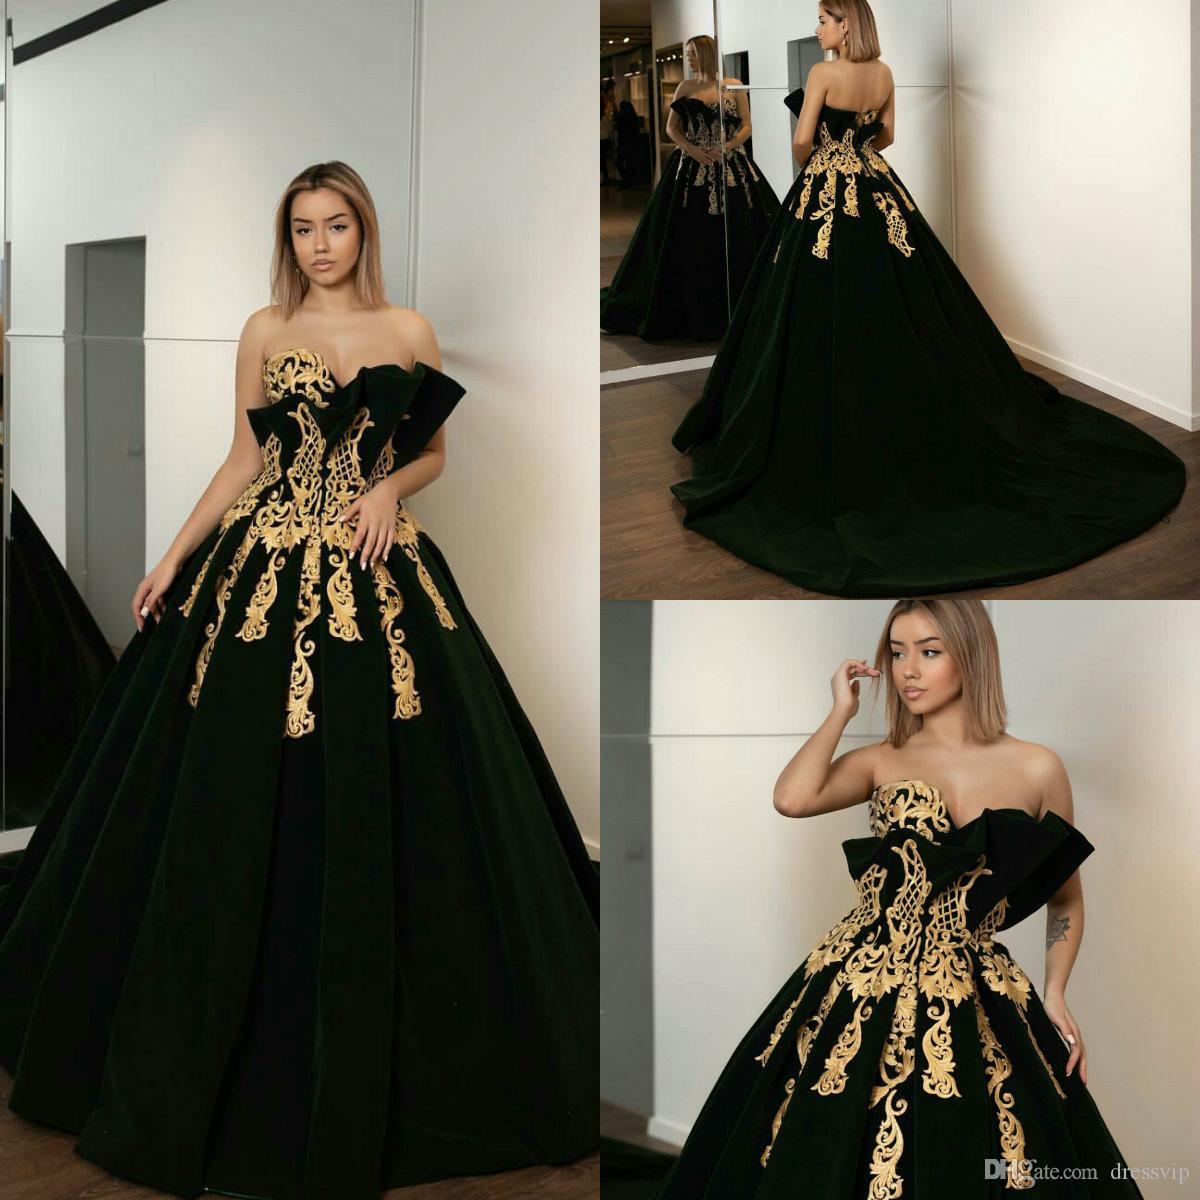 d357ed147c3 2019 Dark Green Prom Dresses Sweetheart Velvet Sweep Train Luxury Arabic Evening  Dress Party Wear Plus Size Special Occasion Gowns Plus Size Prom Dresses ...